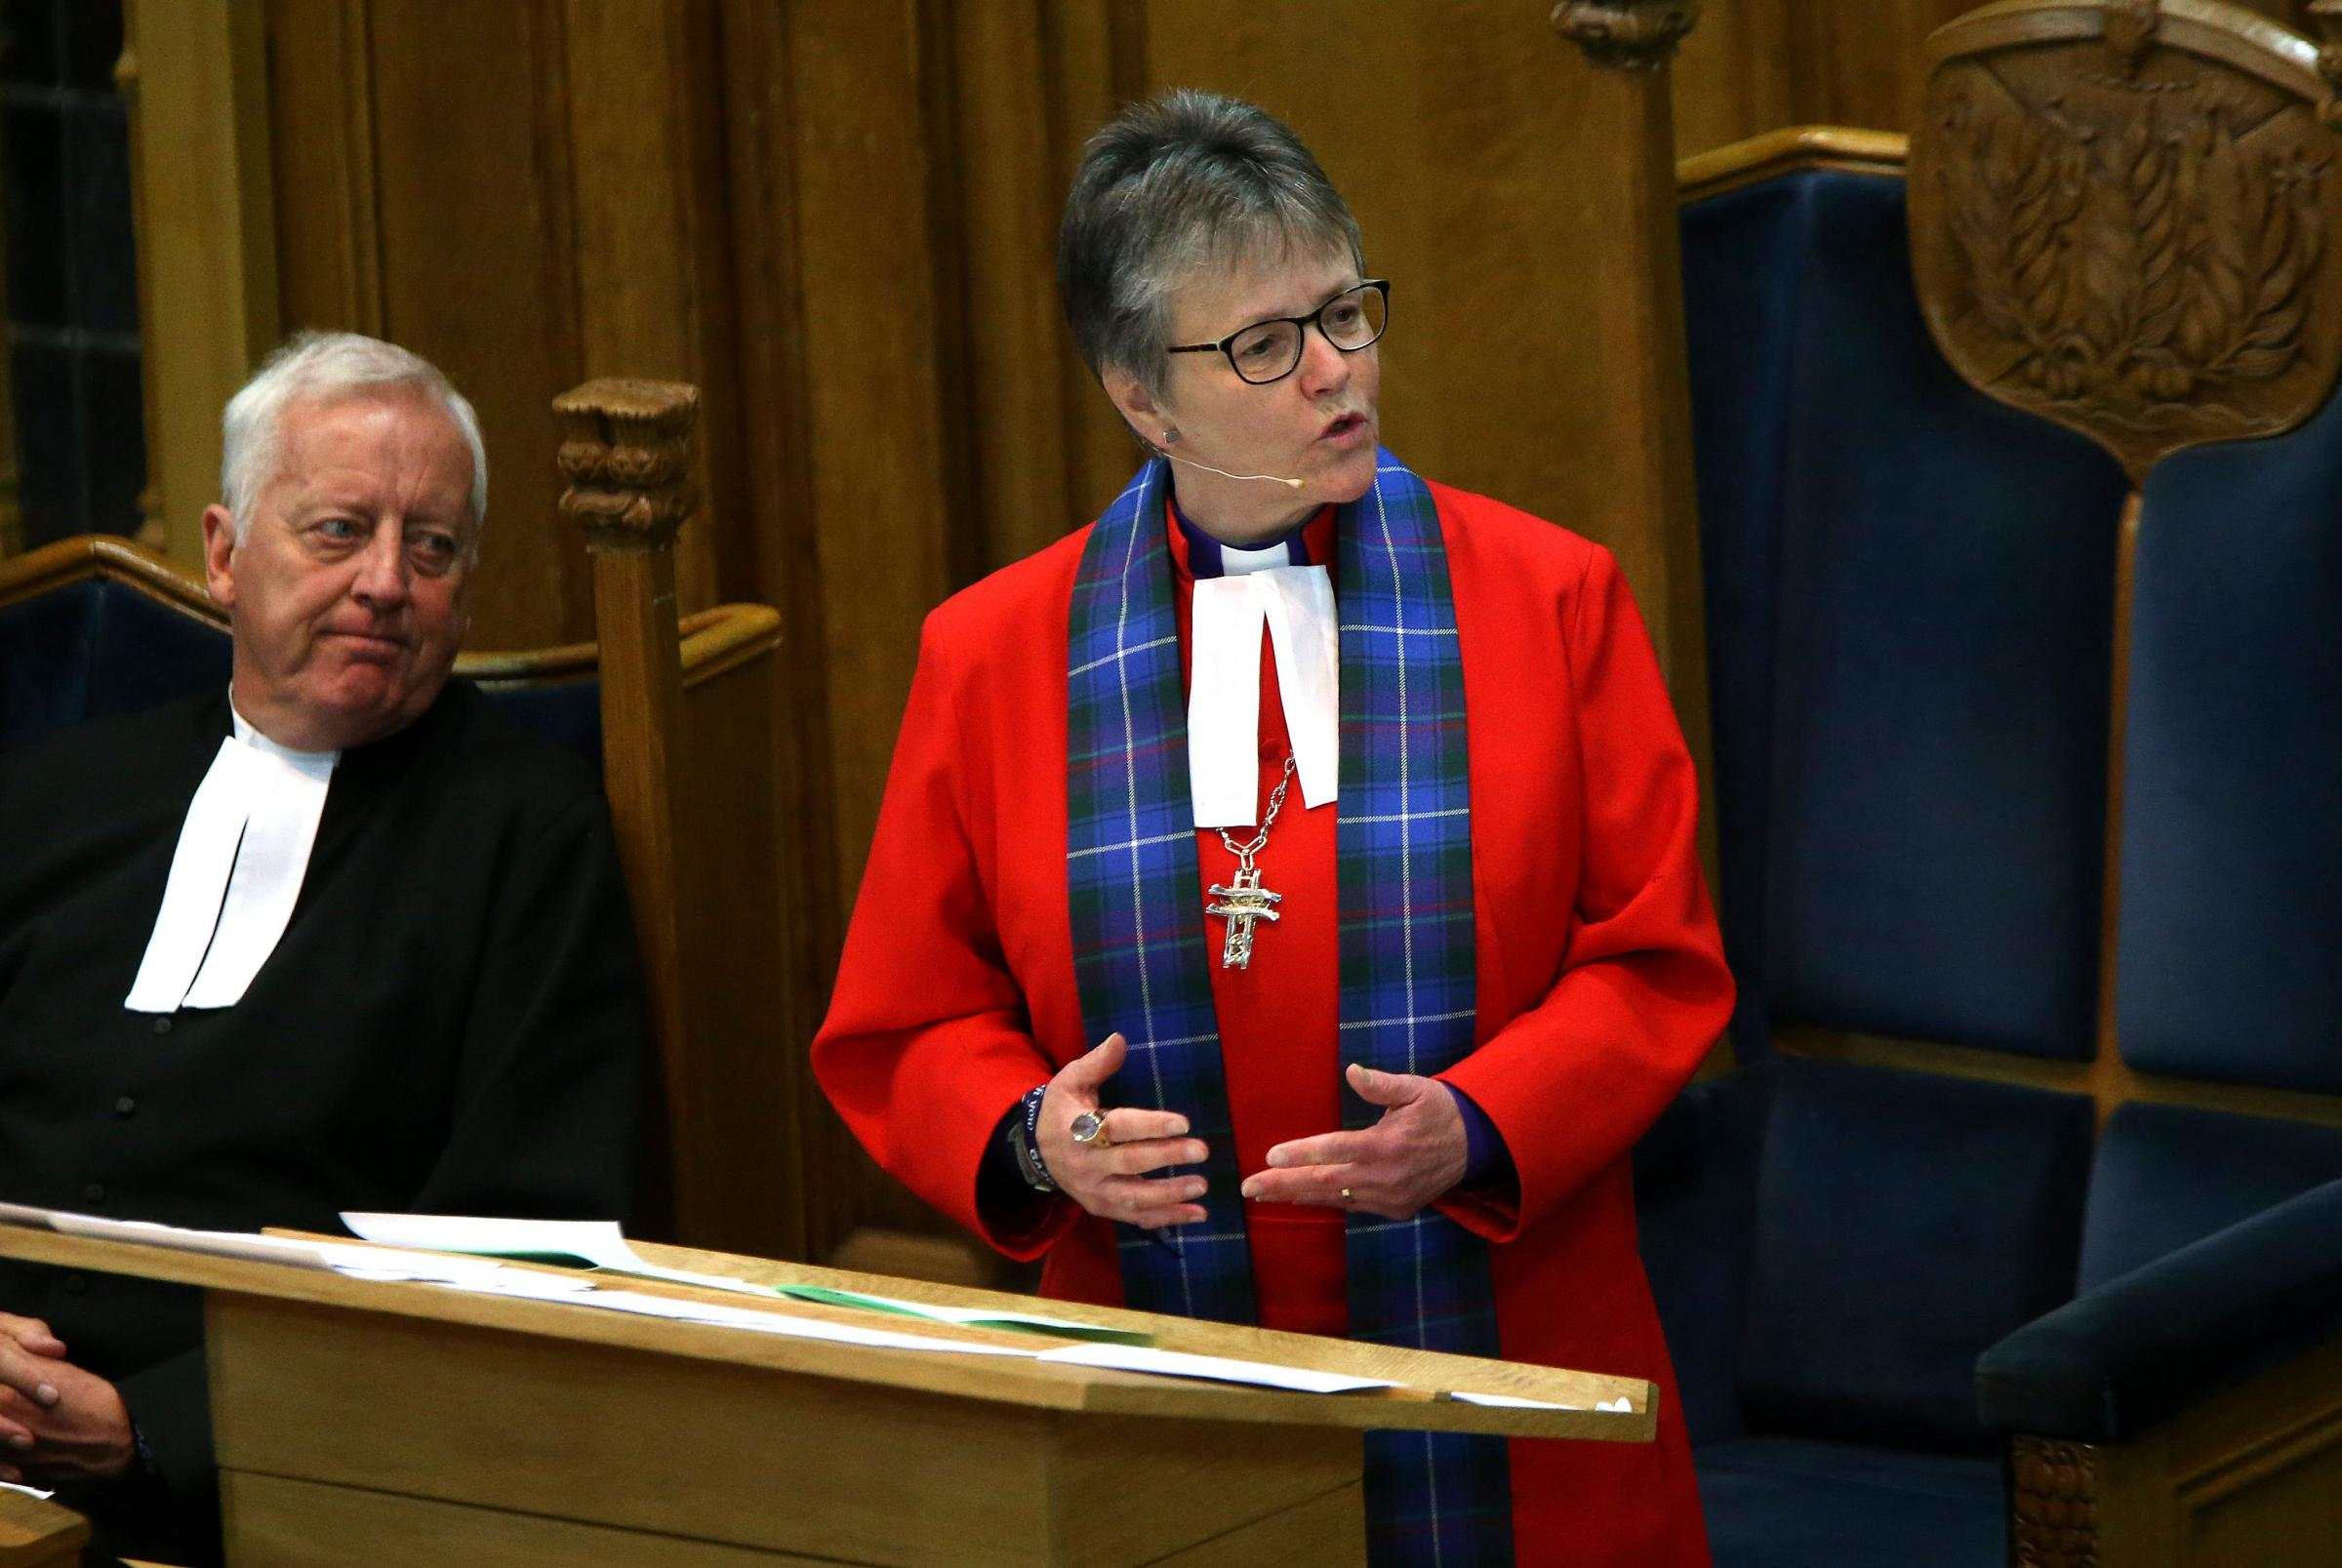 Susan Brown, Moderator of the General Assembly of the Church of Scotland